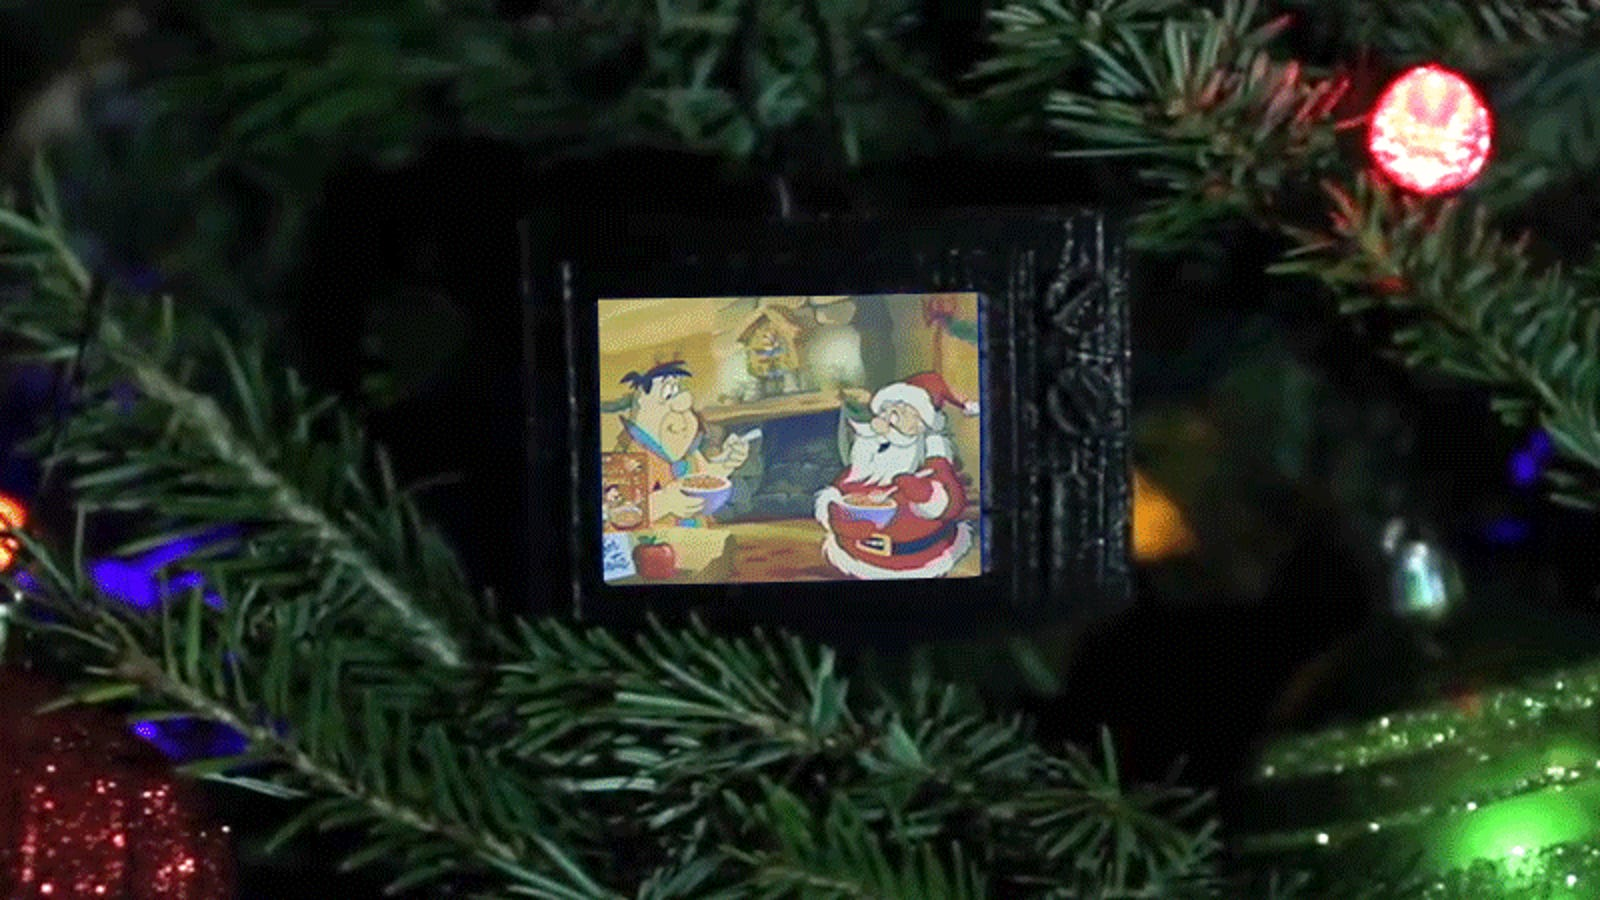 90s Christmas Tree.How To Build A Tiny Tv Ornament That Plays Classic 90s